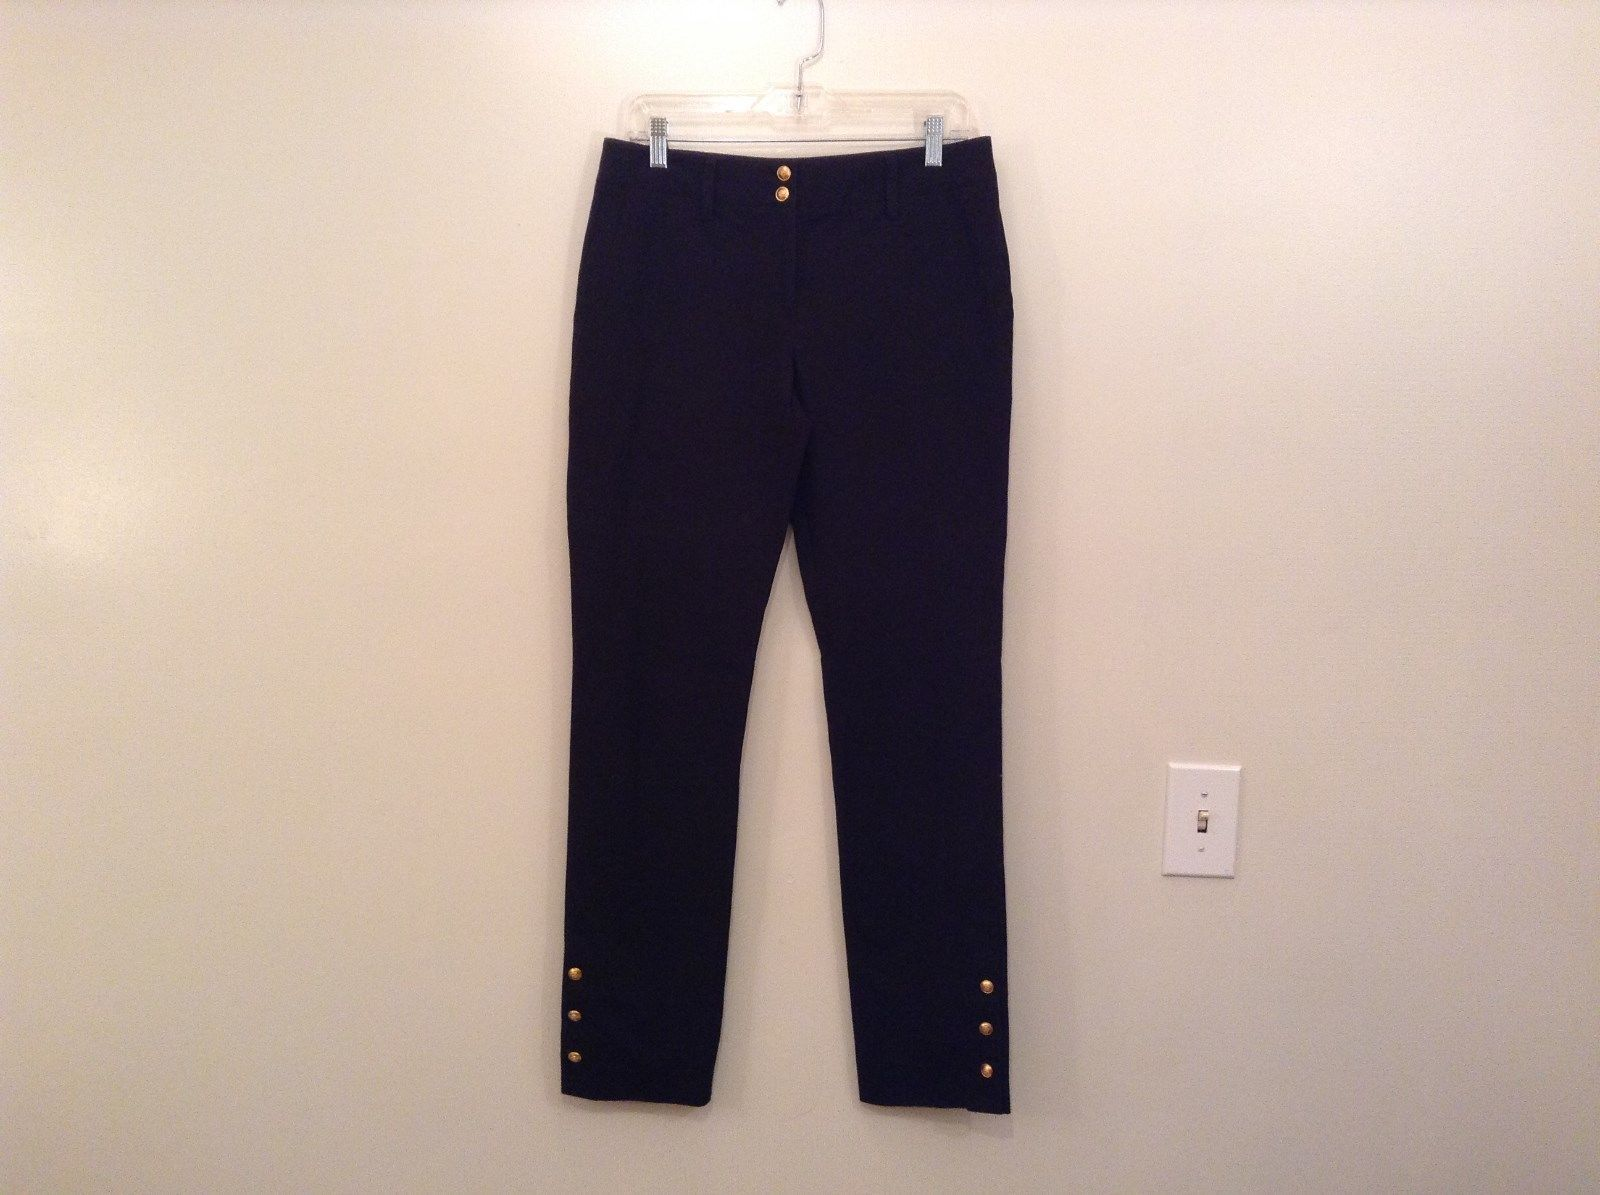 INC International Concepts Black Pants Chain and Decorative Buttons Size 6